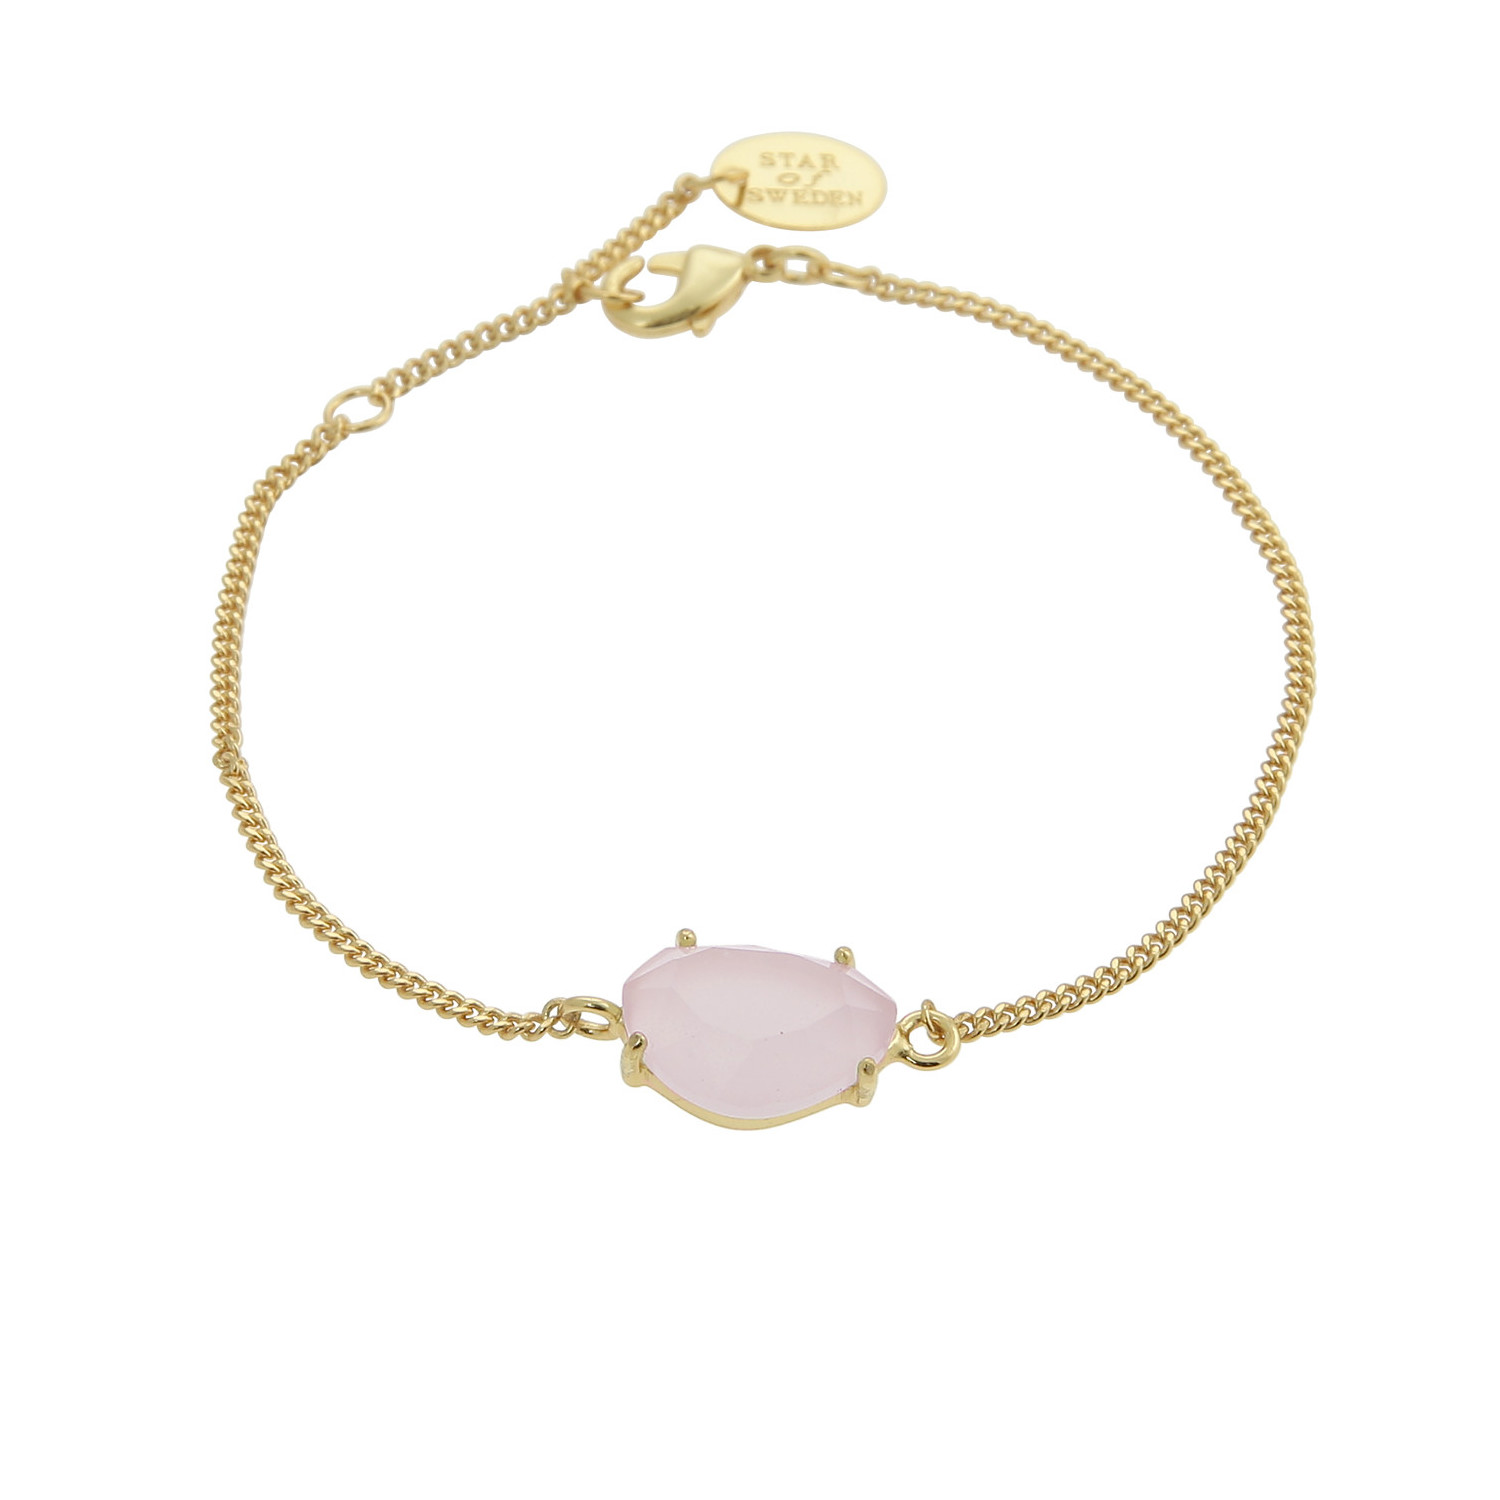 Gold bracelet with pink stone